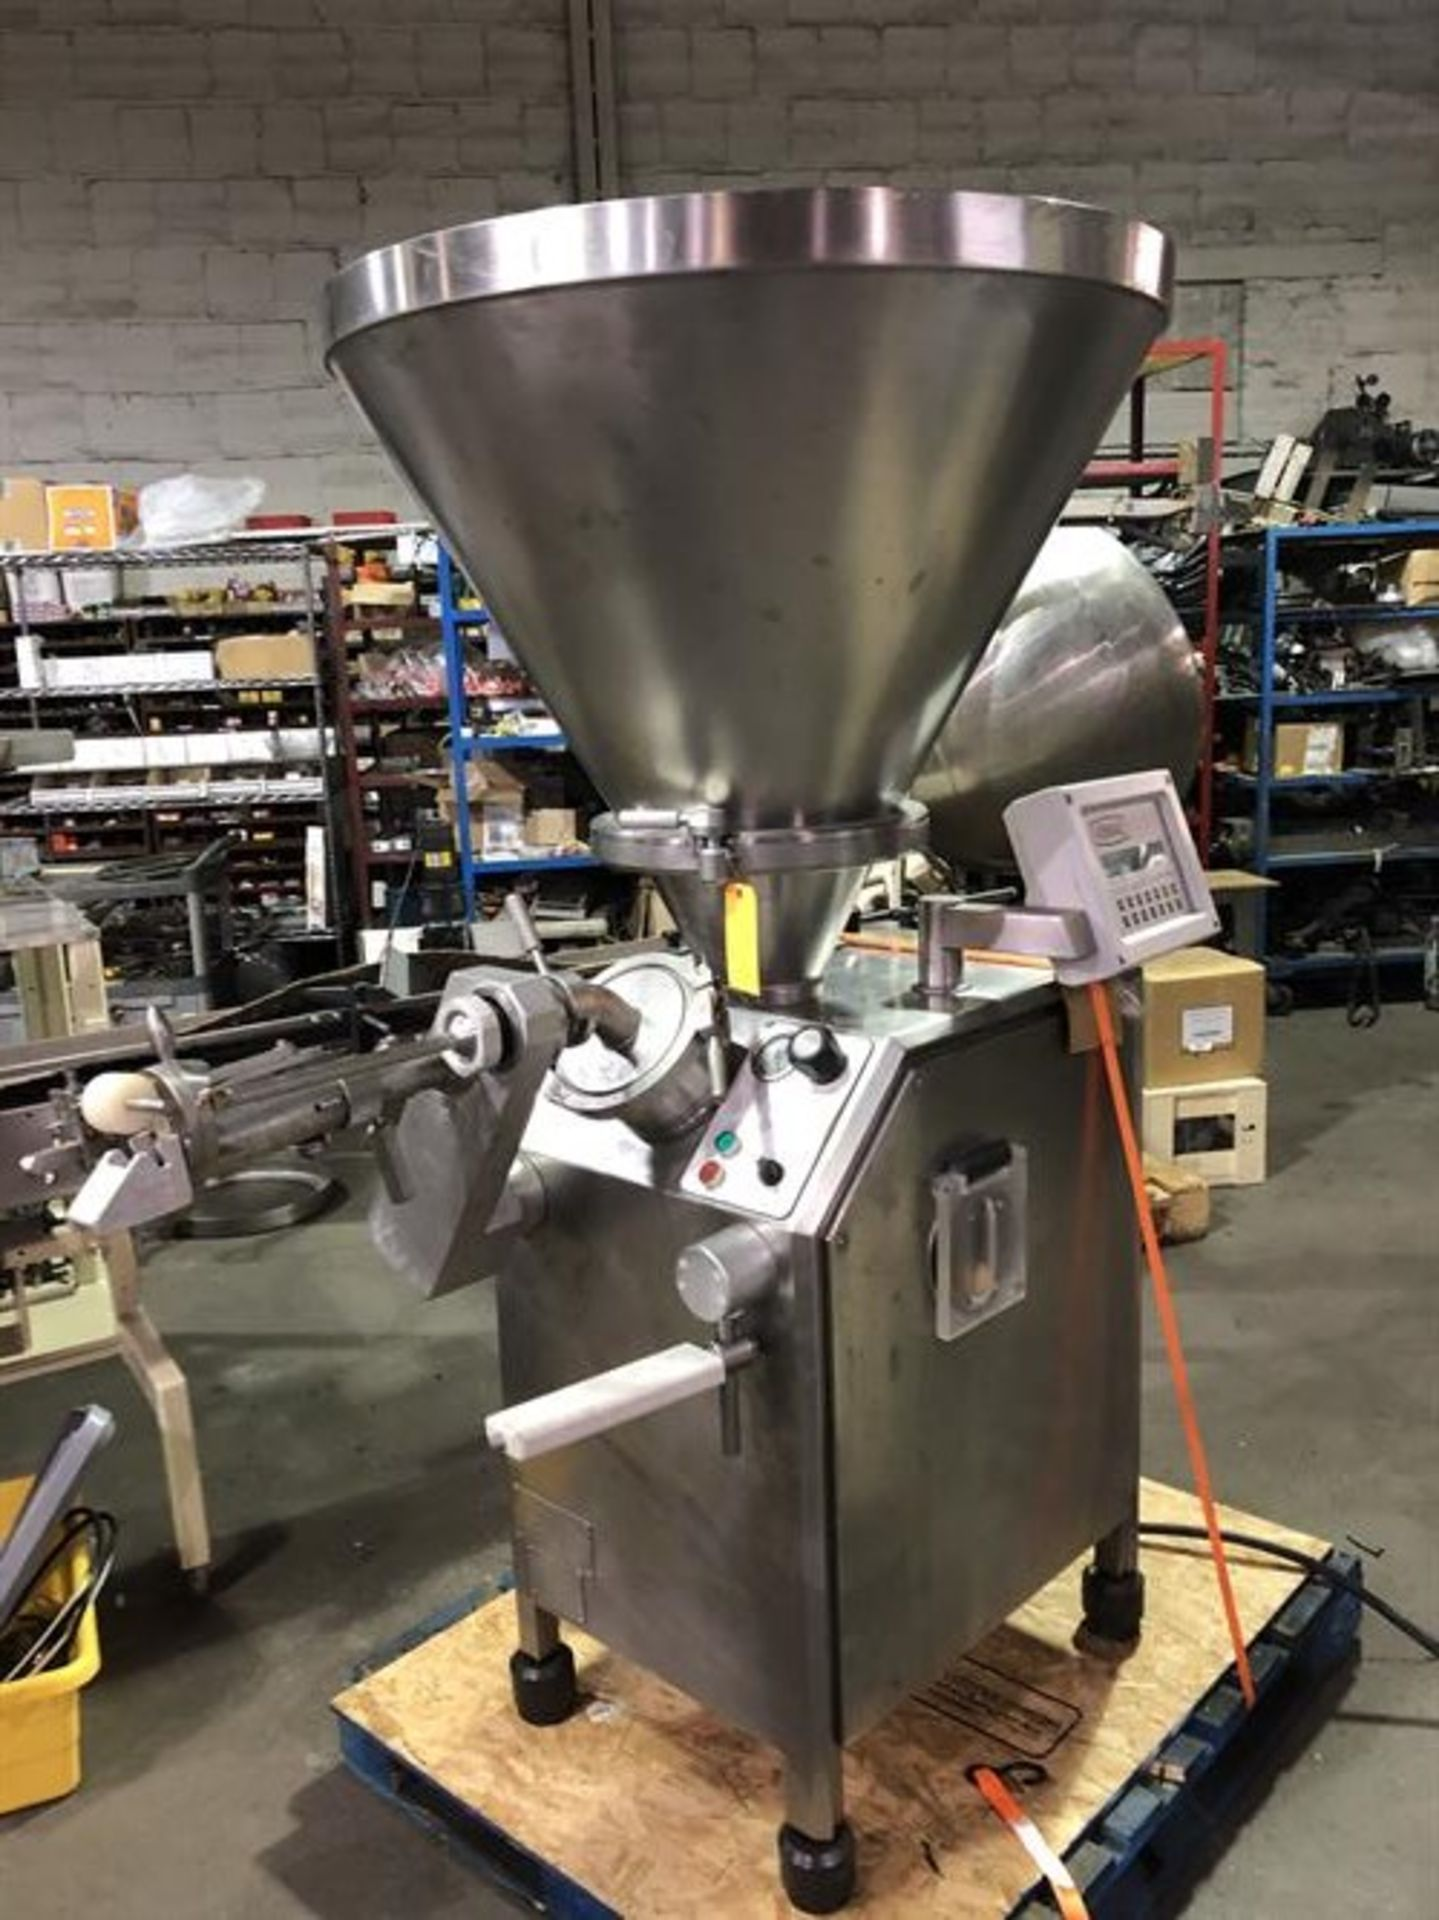 Vemag Robot 500 Stainless Steel Vacuum Stuffer - Machine has been completely reconditioned - PC